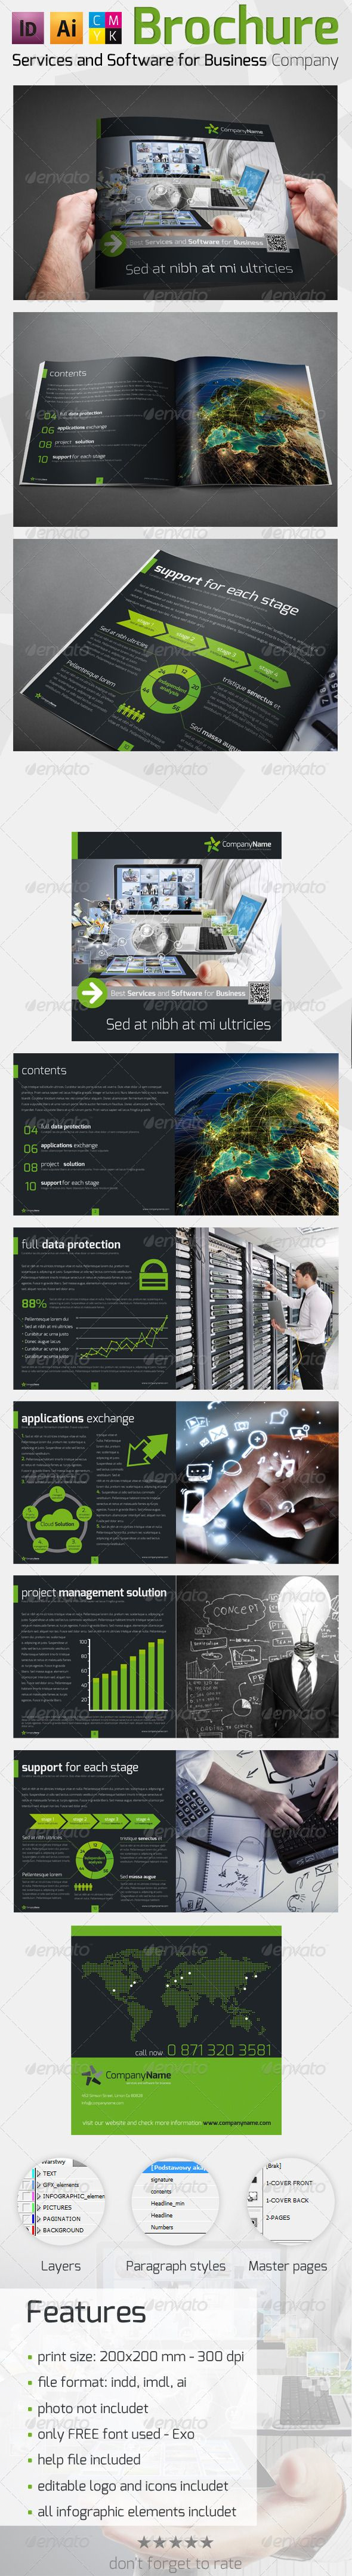 Solution And Software Brochure  Corporate Brochures  Brochures